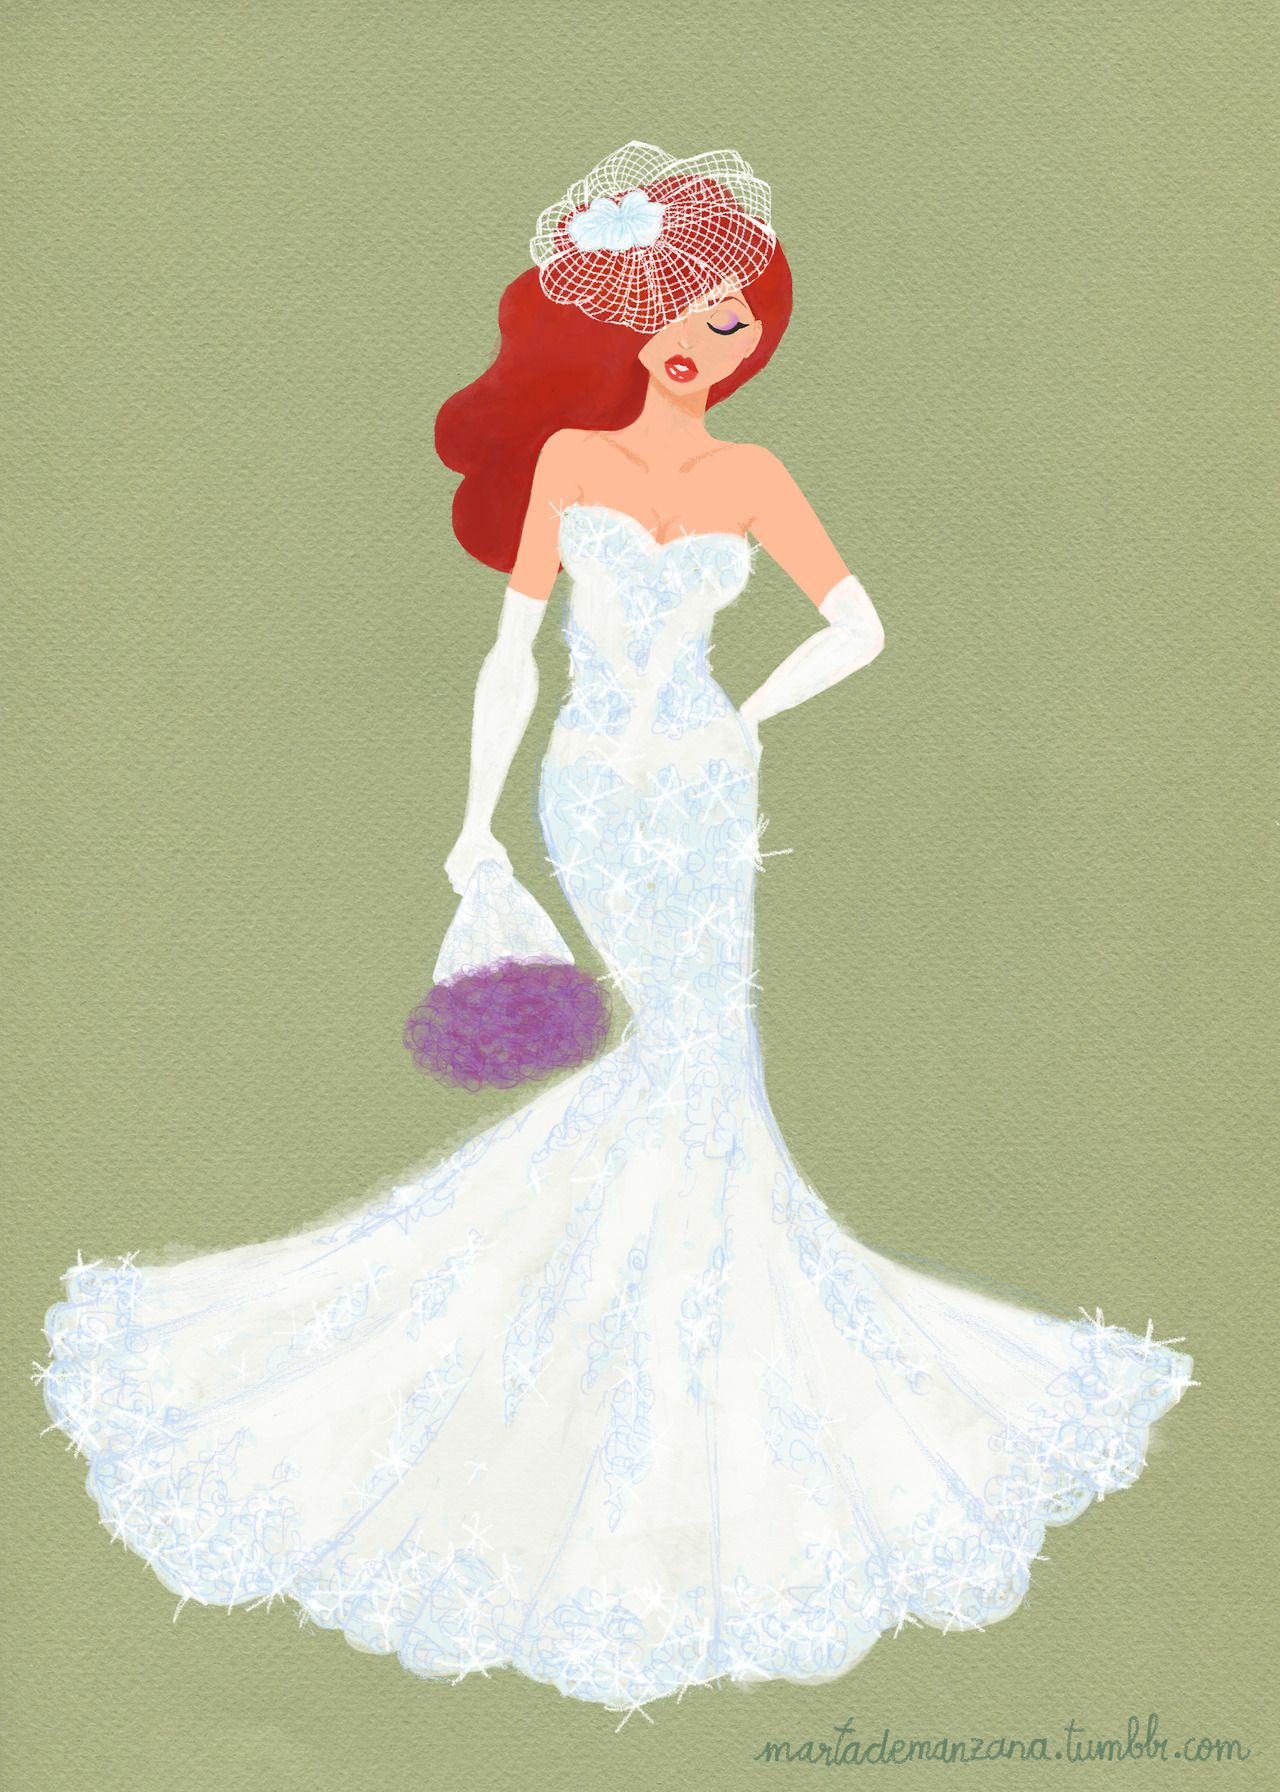 Jessica Rabbit wedding dress by Marta de Manzana | Ilustración ...